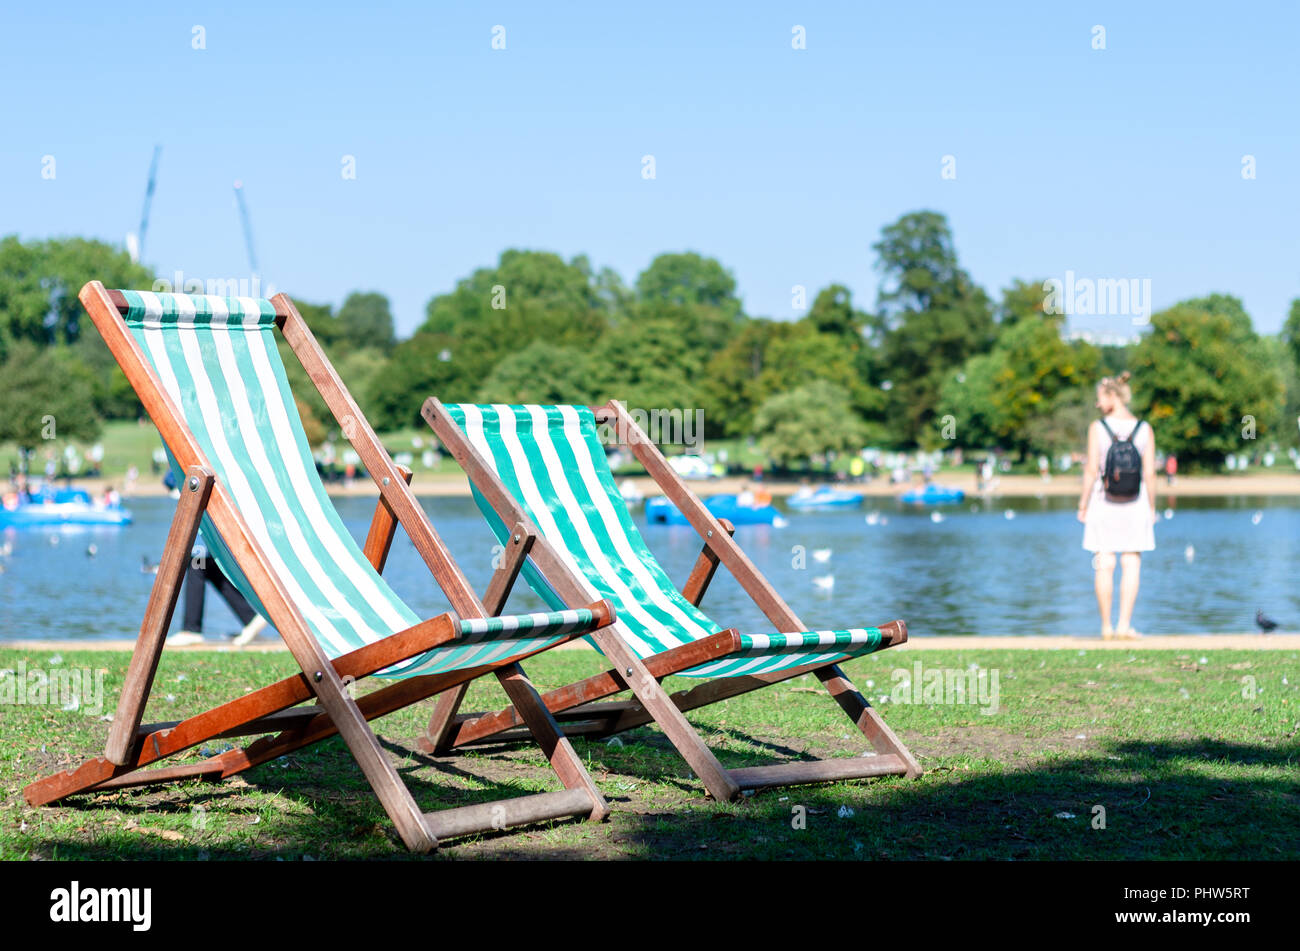 Deck chairs in the park in summertime - Stock Image